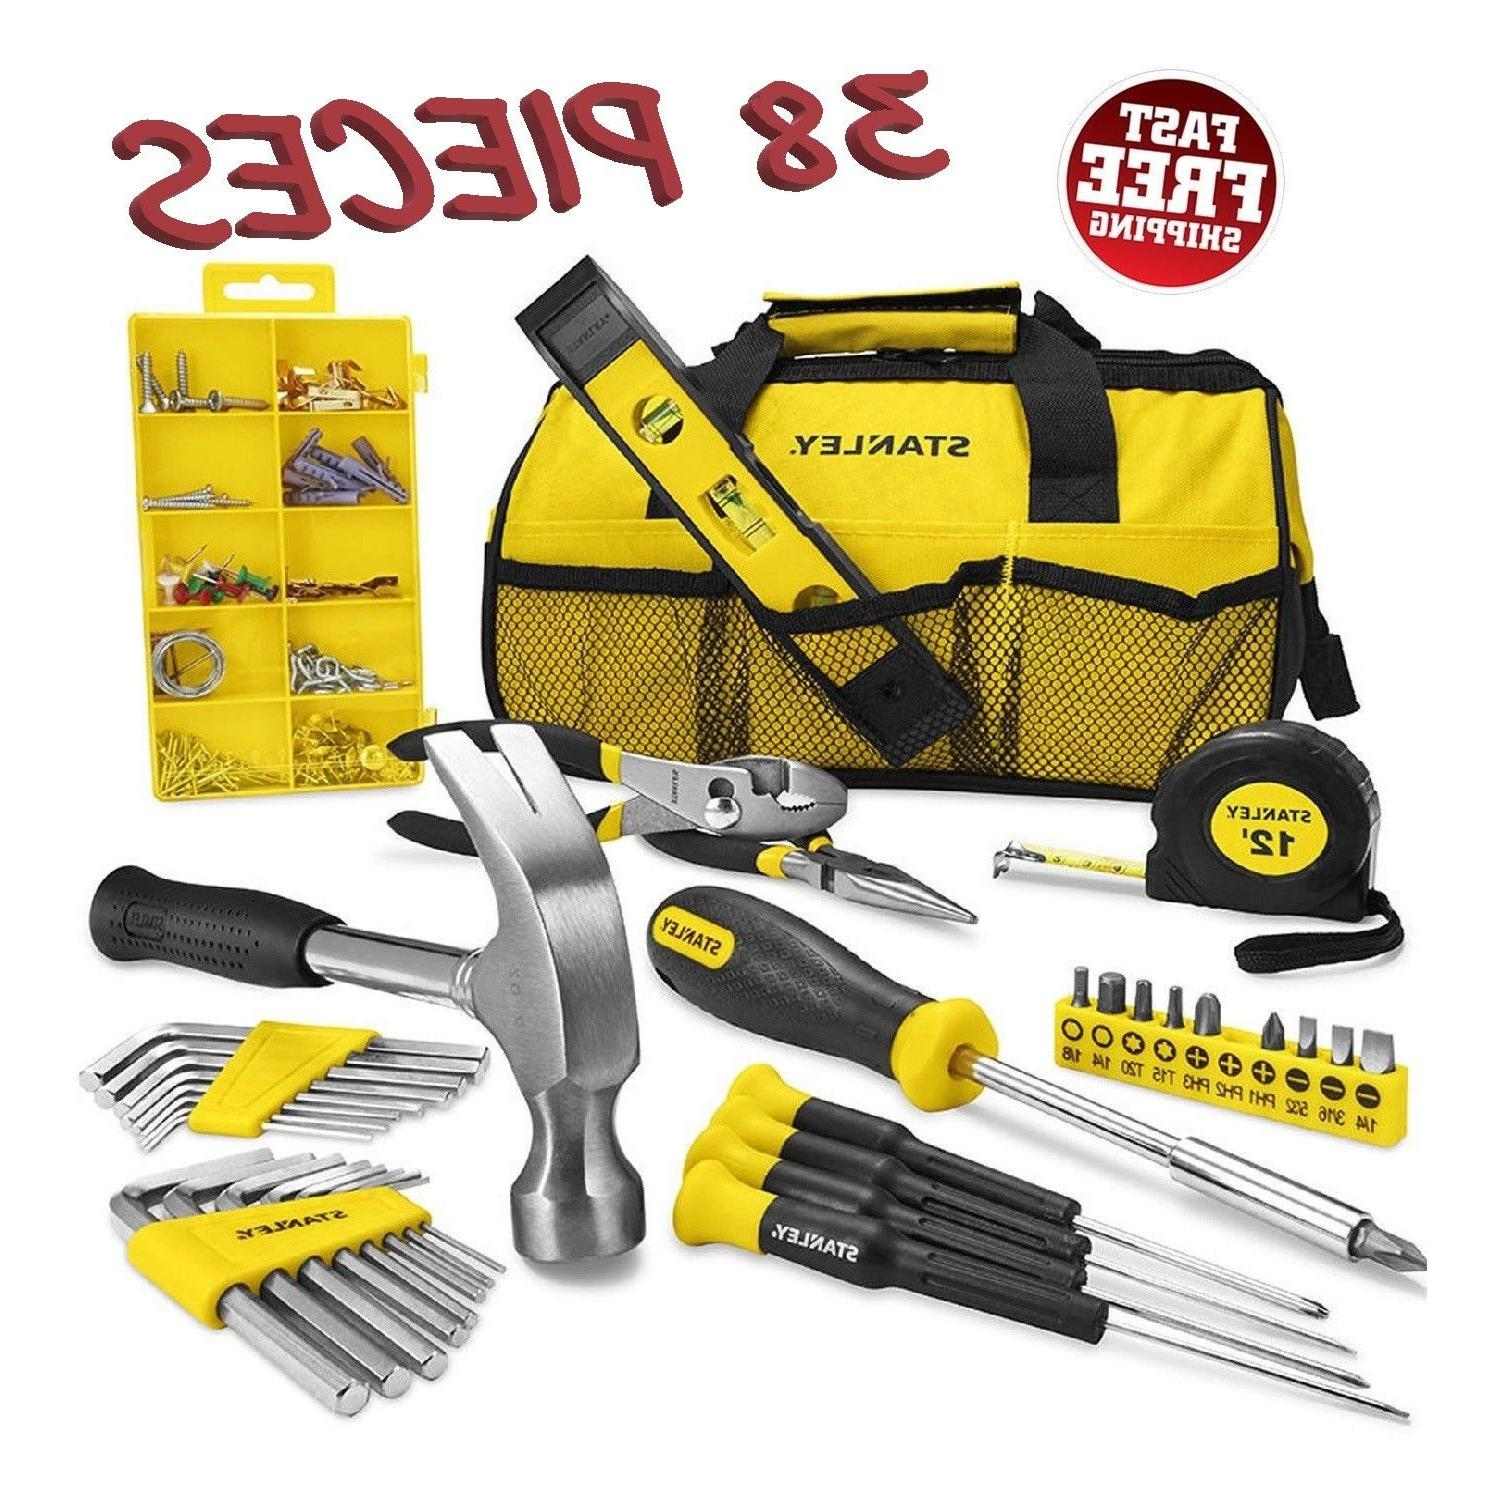 Stanley 38pc Set with Gift Repair Kit Combo